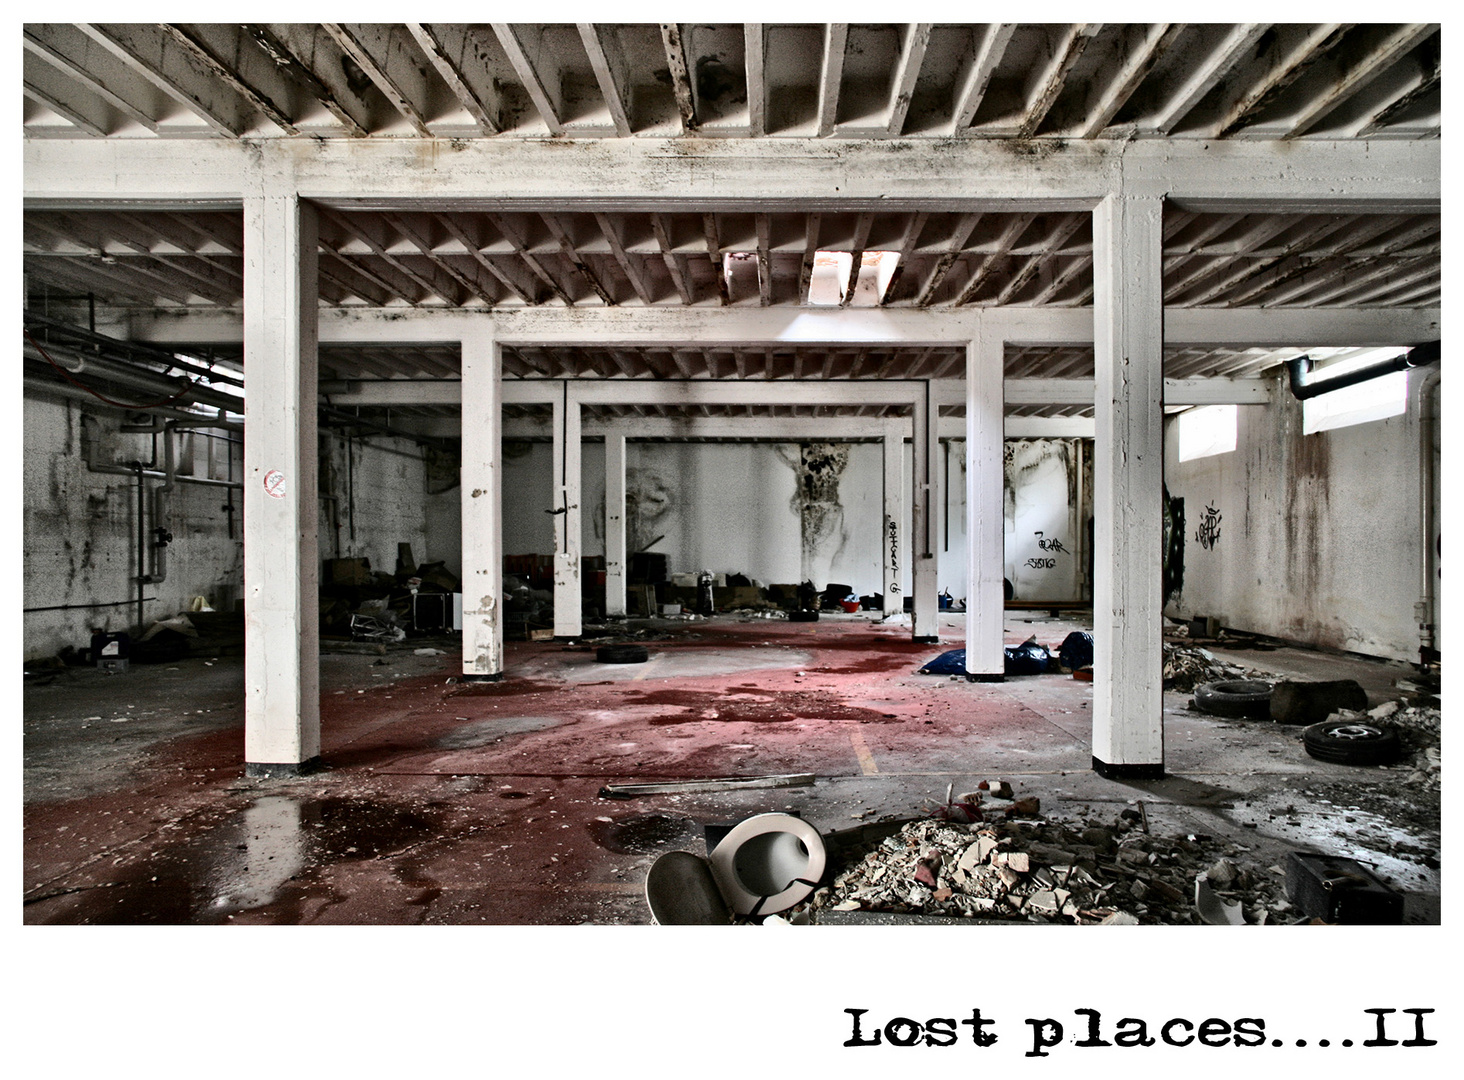 Lost places...11